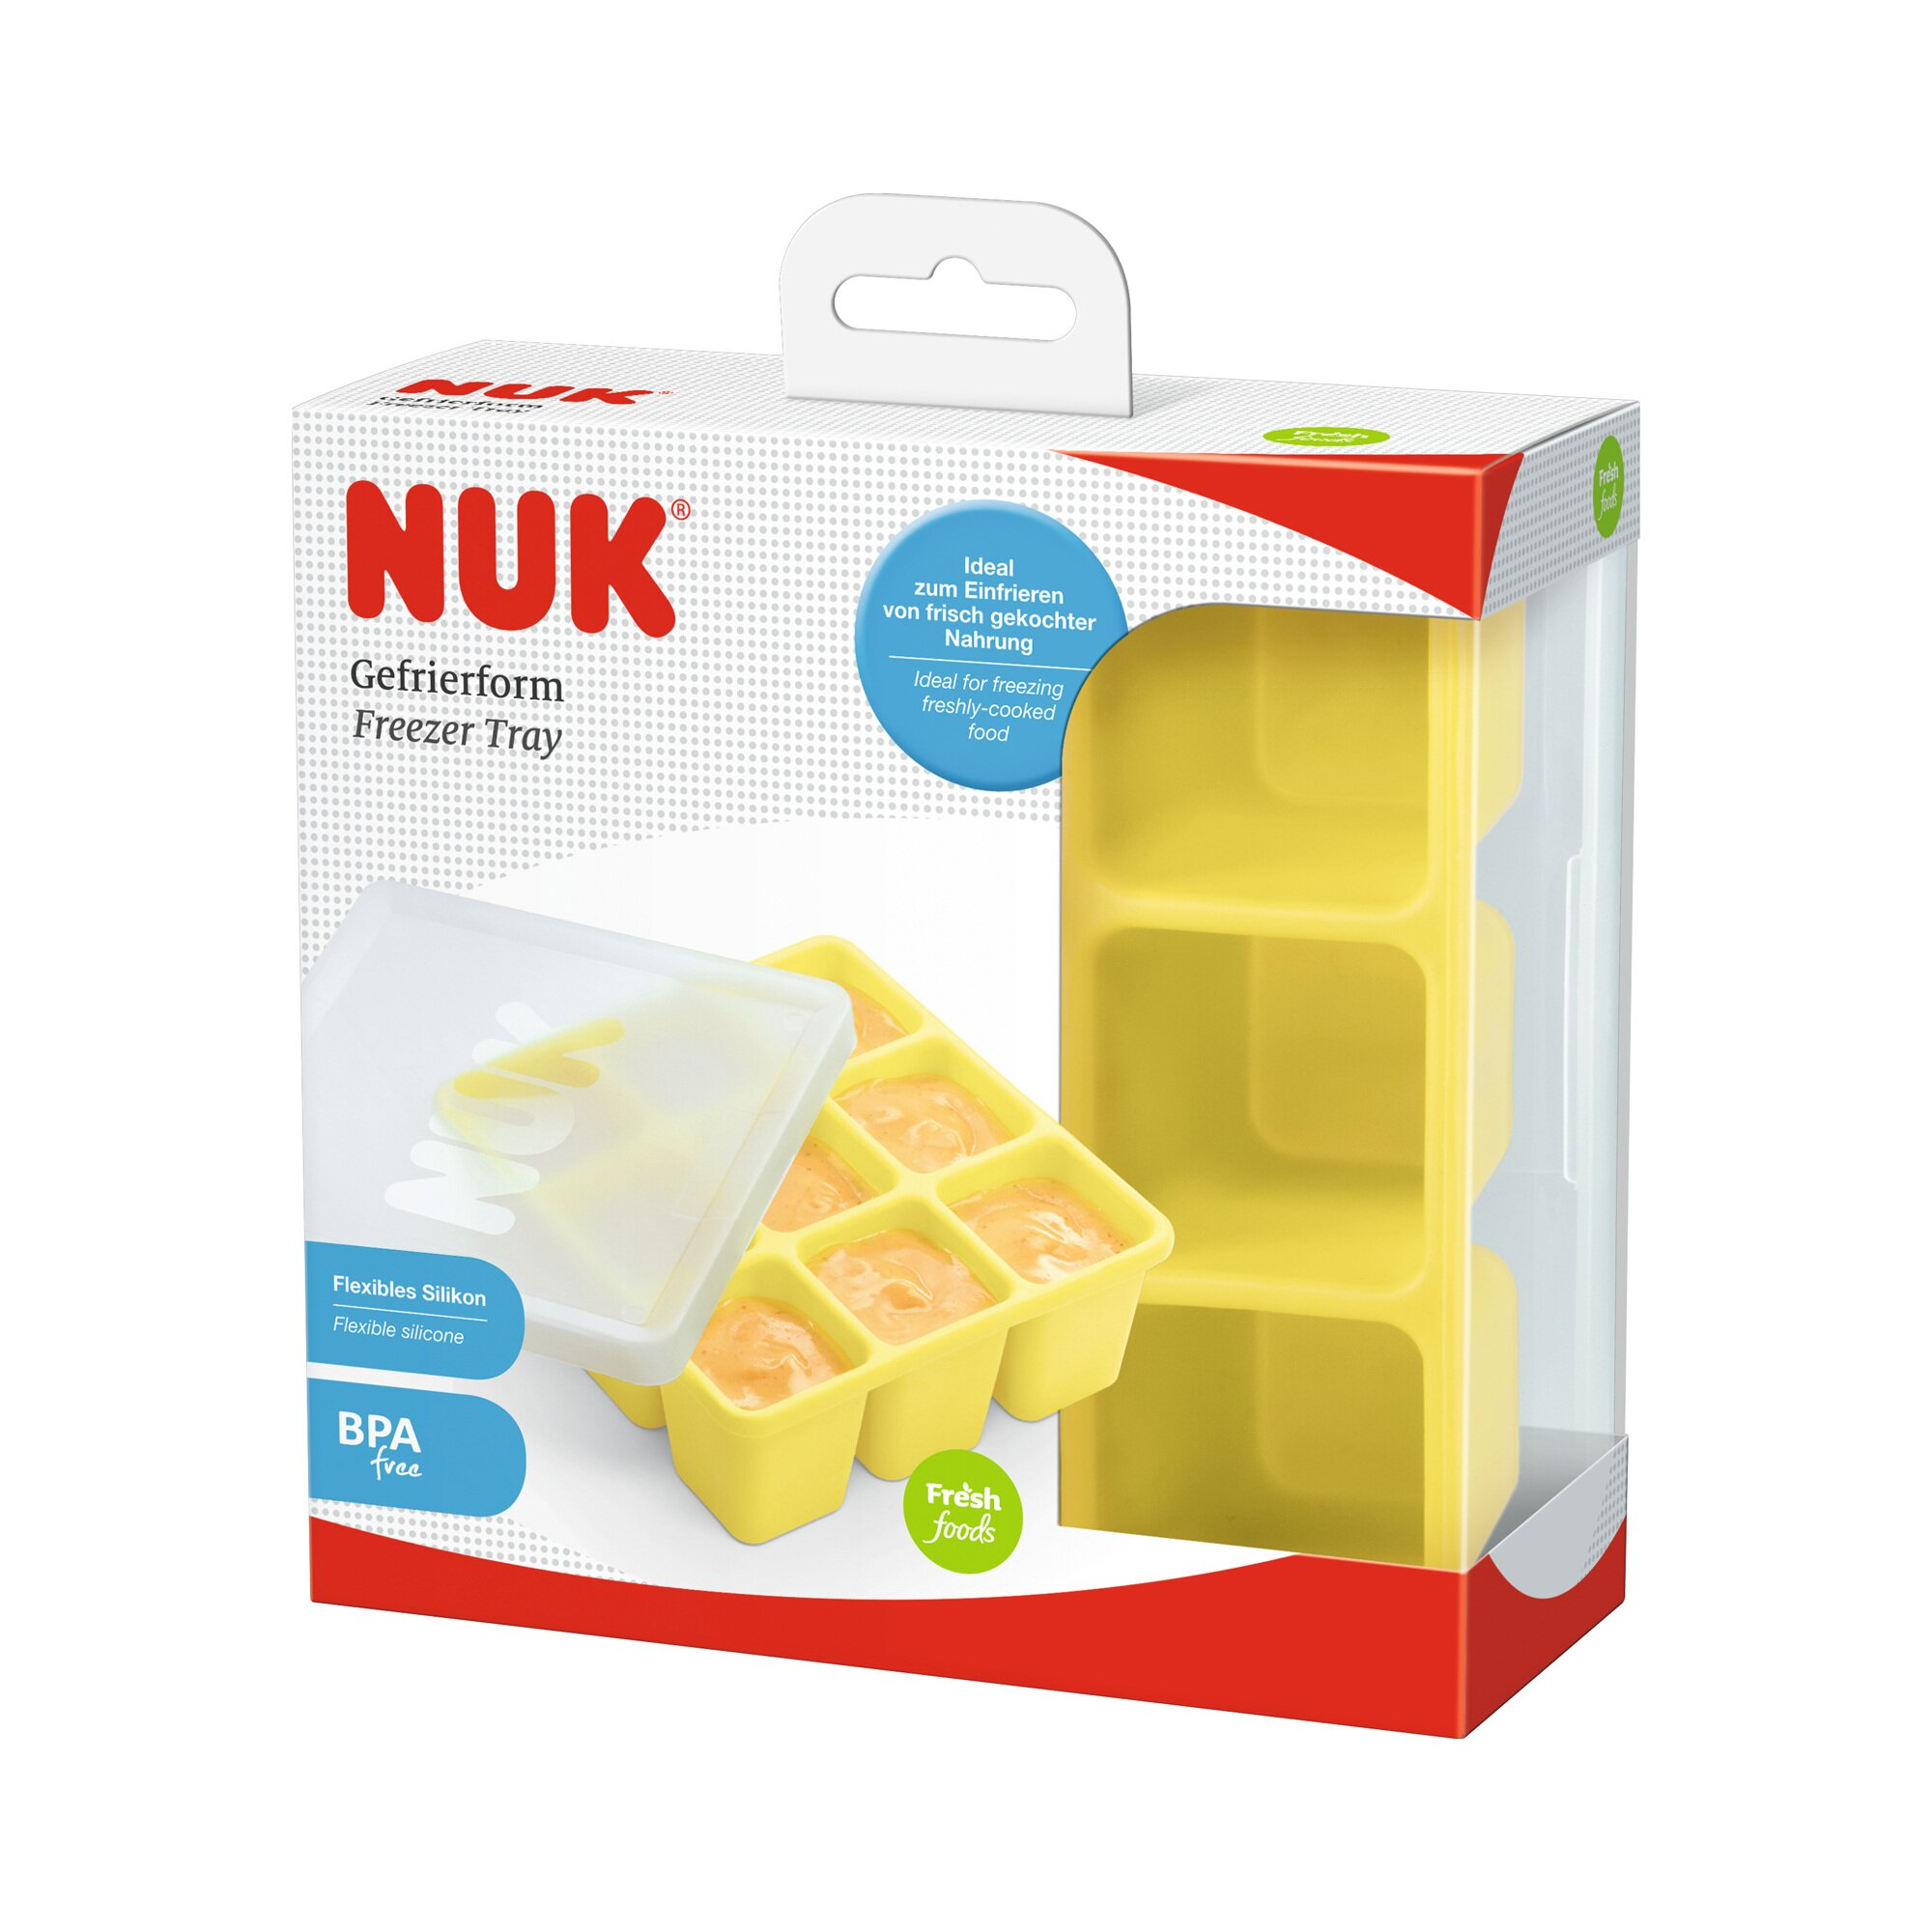 nuk-fresh-foods-gefrierform